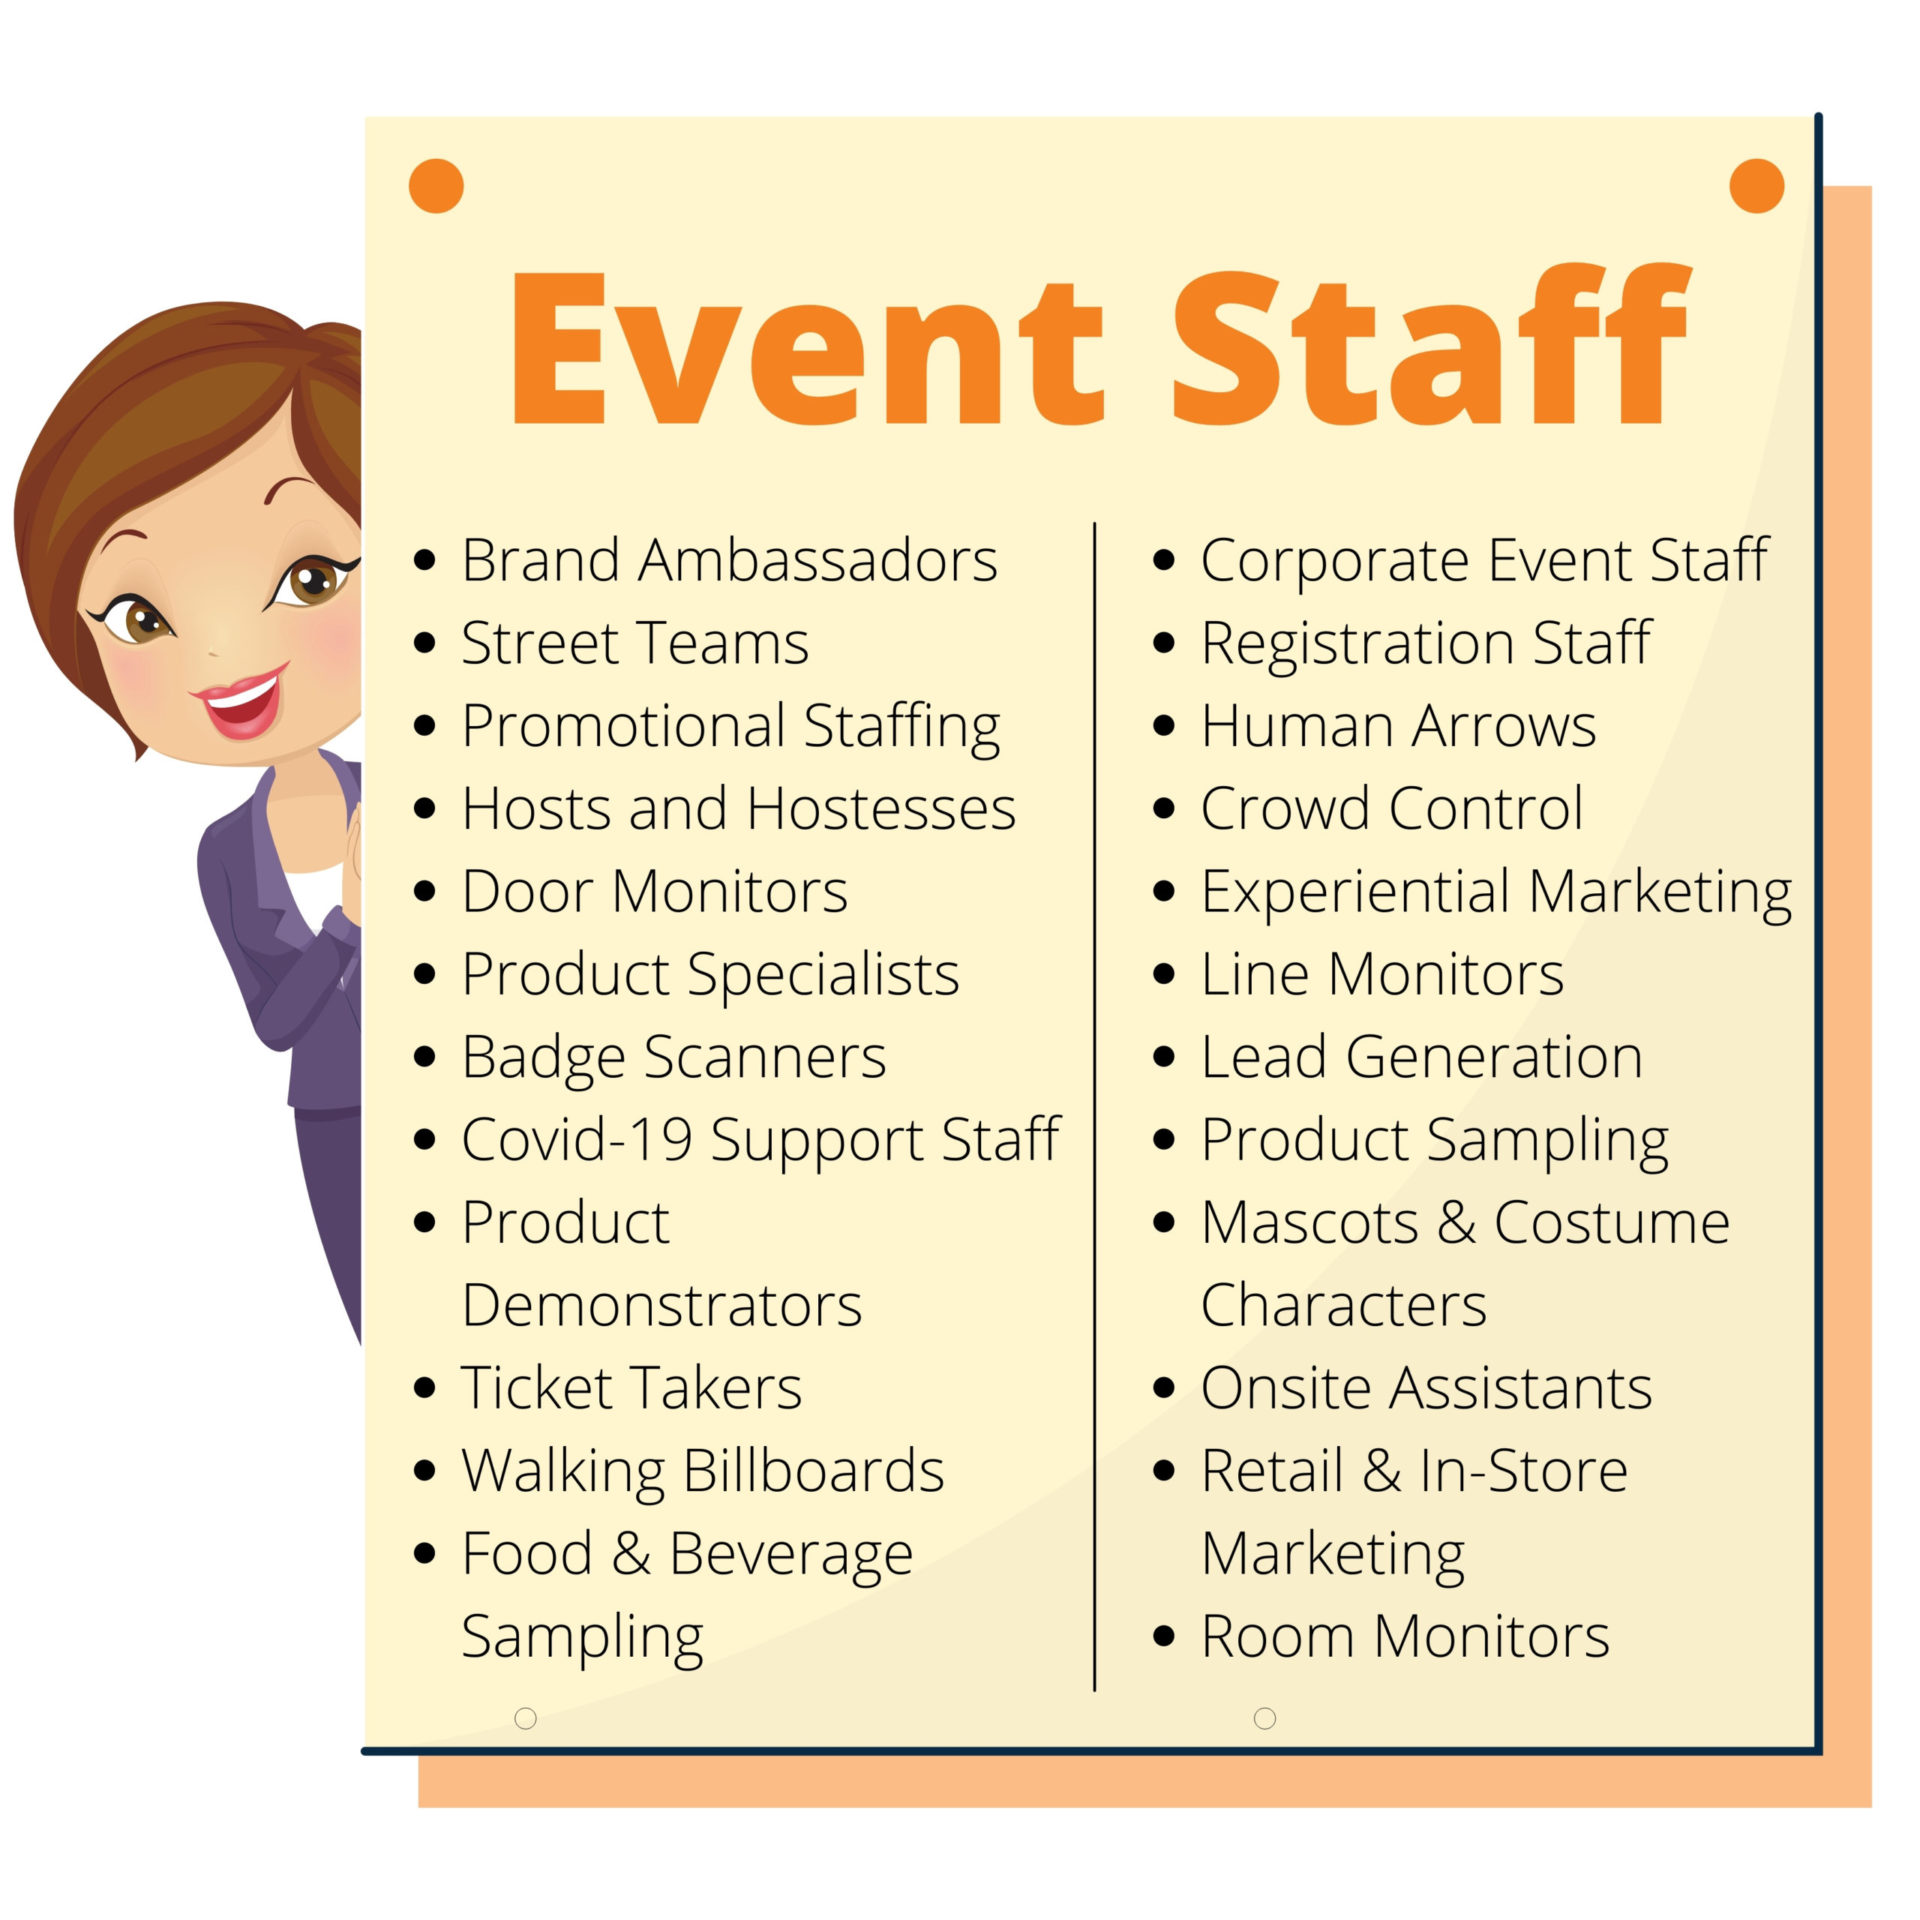 Event Staff: Brand Ambassadors, Street Teams, Promotional Staffing, Hosts and Hostesses, Door Monitors, Product Specialists, Badge Scanners, Covid-19 Support Staff, Product Demonstrators, Ticket Takers, Walking Billboards, Food & Beverage Sampling, Corporate Event Staff, Registration Staff, Human Arrows, Crowd Control, Experiential Marketing, Line Monitors, Lead Generation, Product Sampling, Mascots & Costume Characters, Onsite Assistants, Retail & In-Store Marketing, Room Monitors